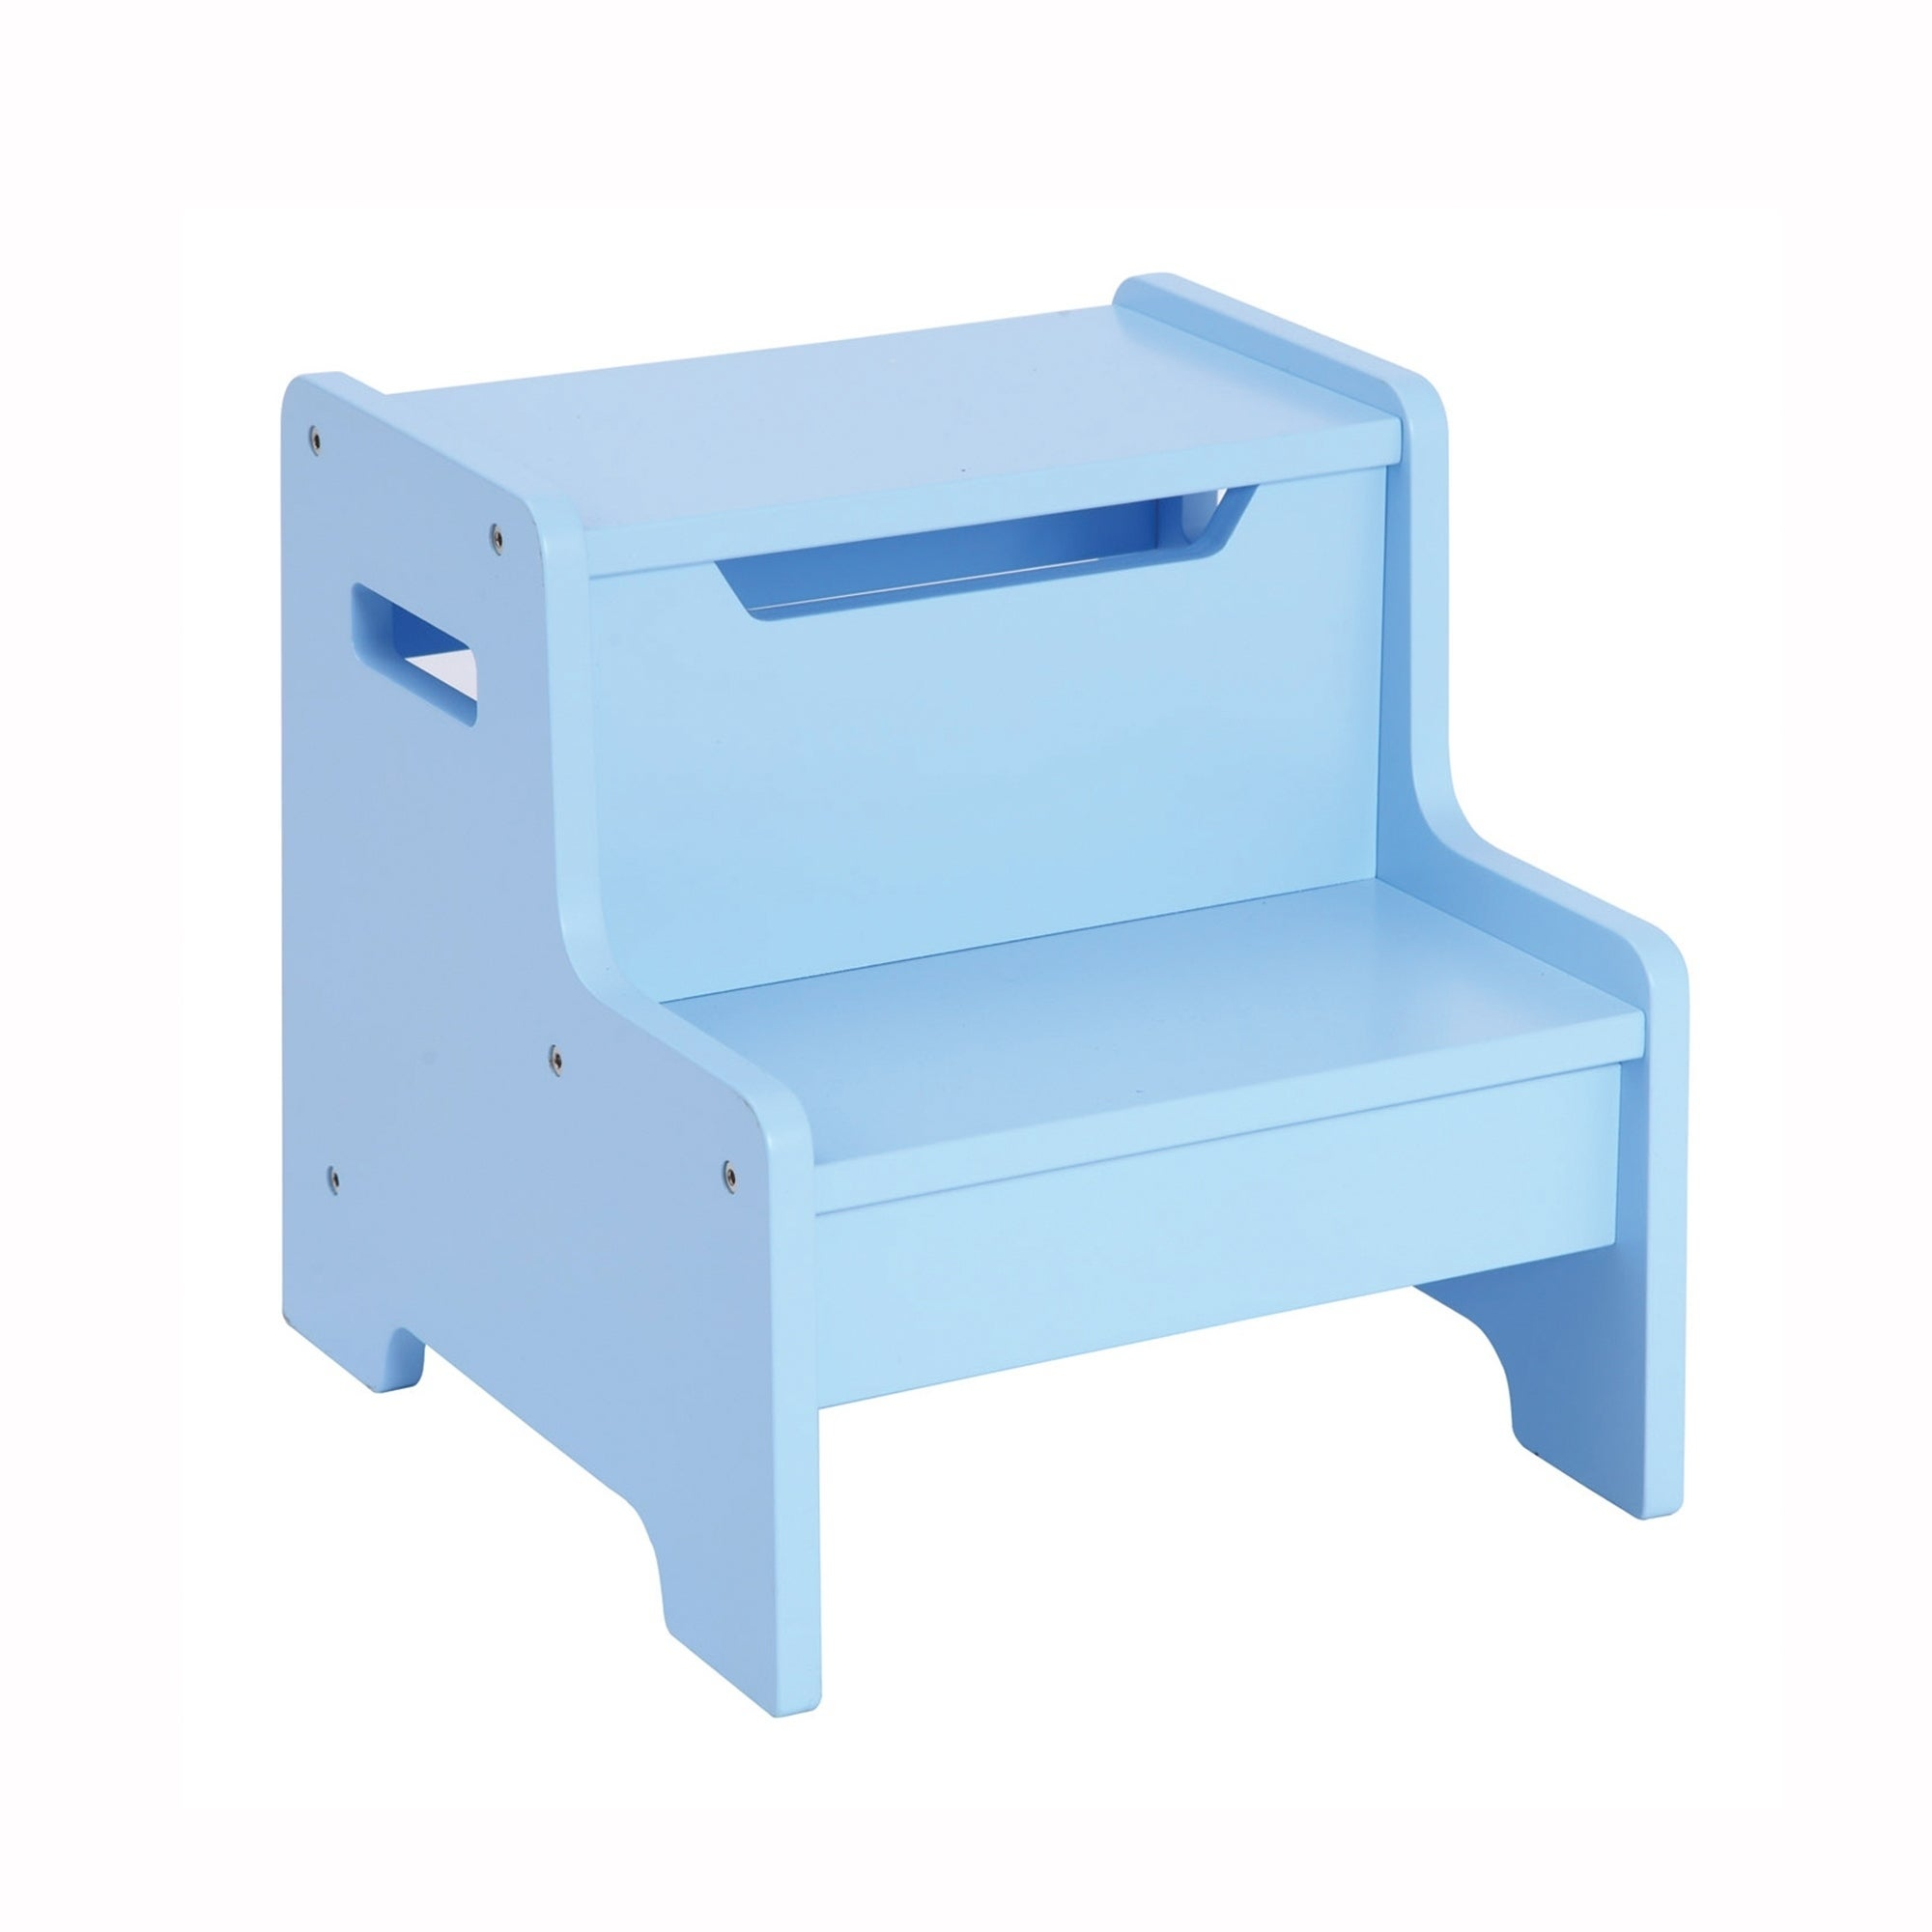 Guidecraft Expressions Step Stool Light Blue (Expressions...